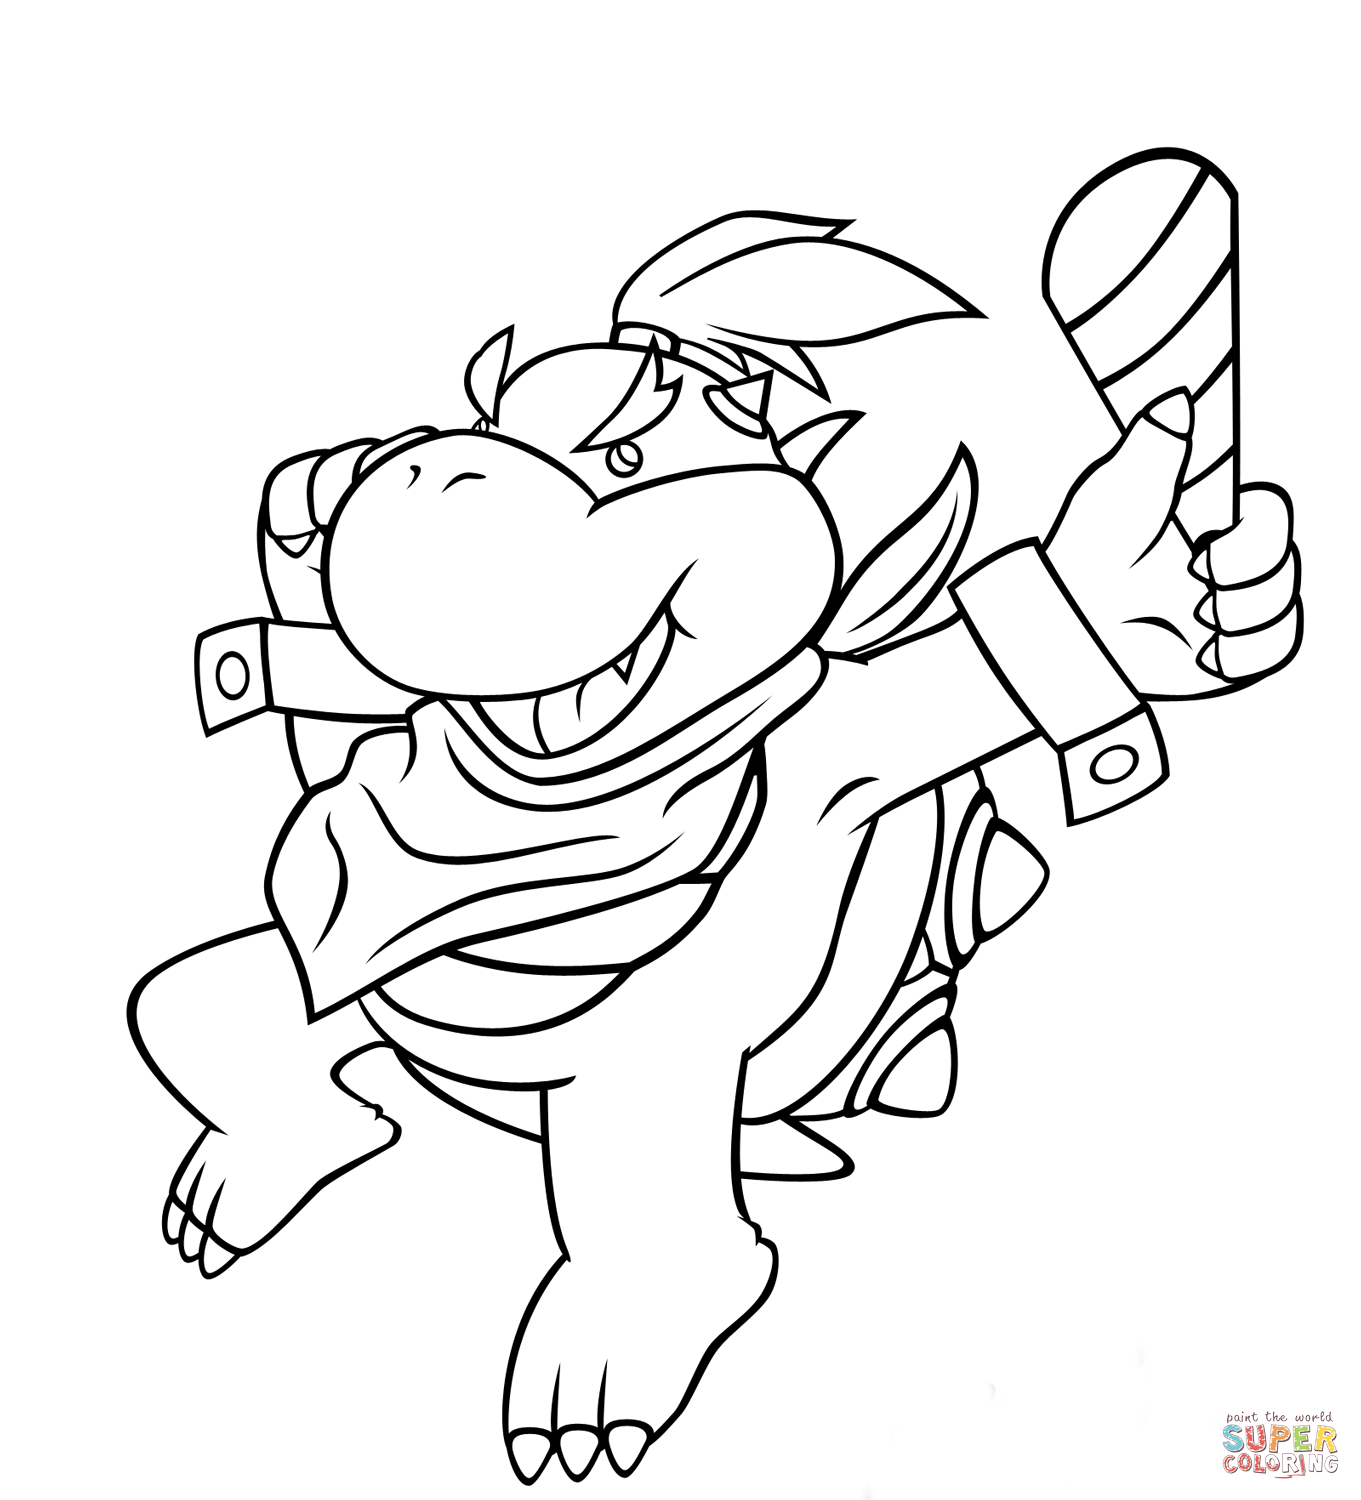 Bowser Jr. coloring page | Free Printable Coloring Pages